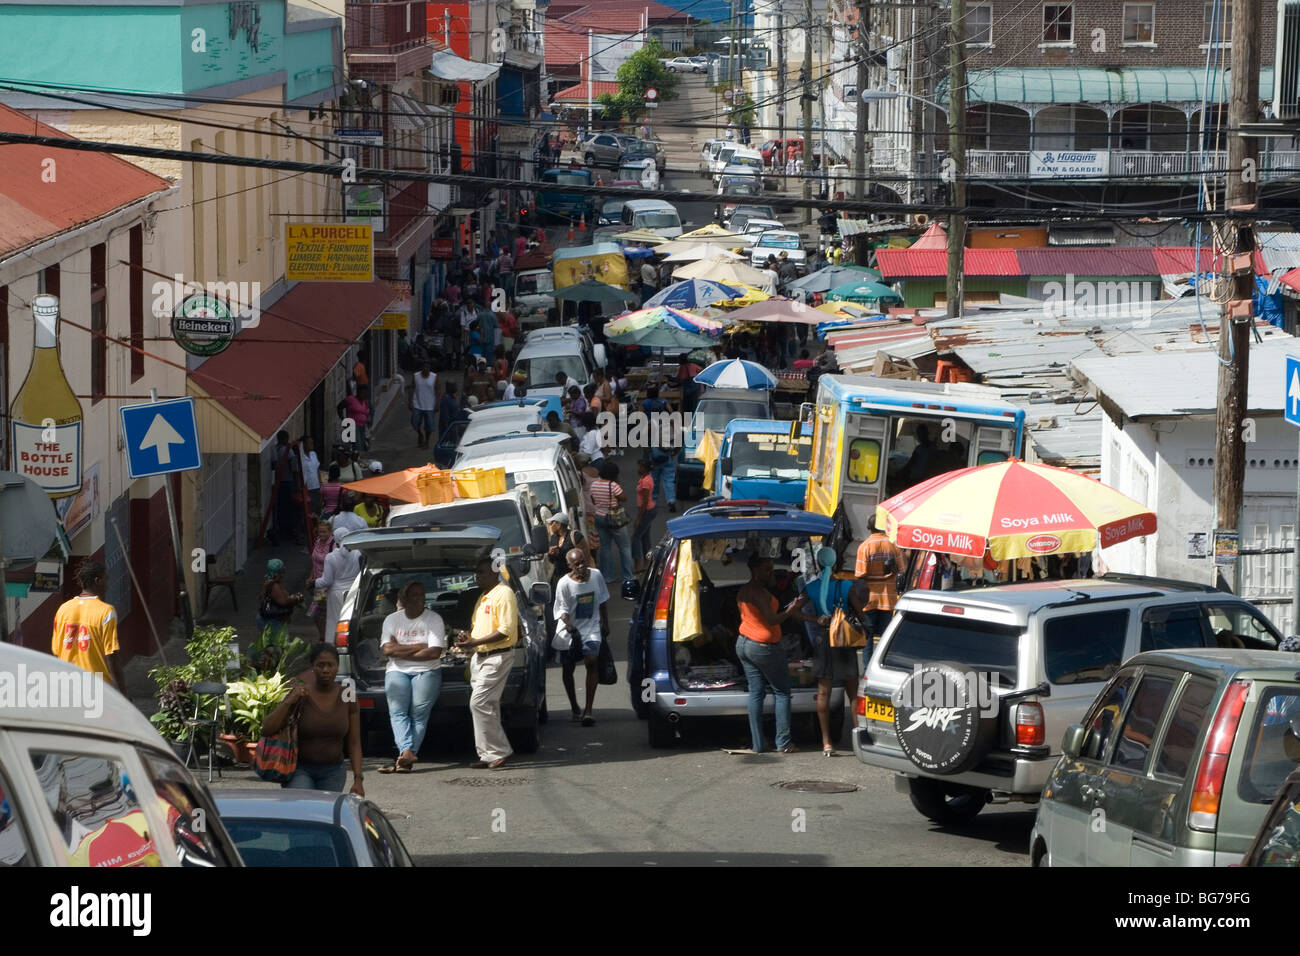 Overall View of the Busy Street Spice Market, Saint George's, Grenada, West Indies. - Stock Image